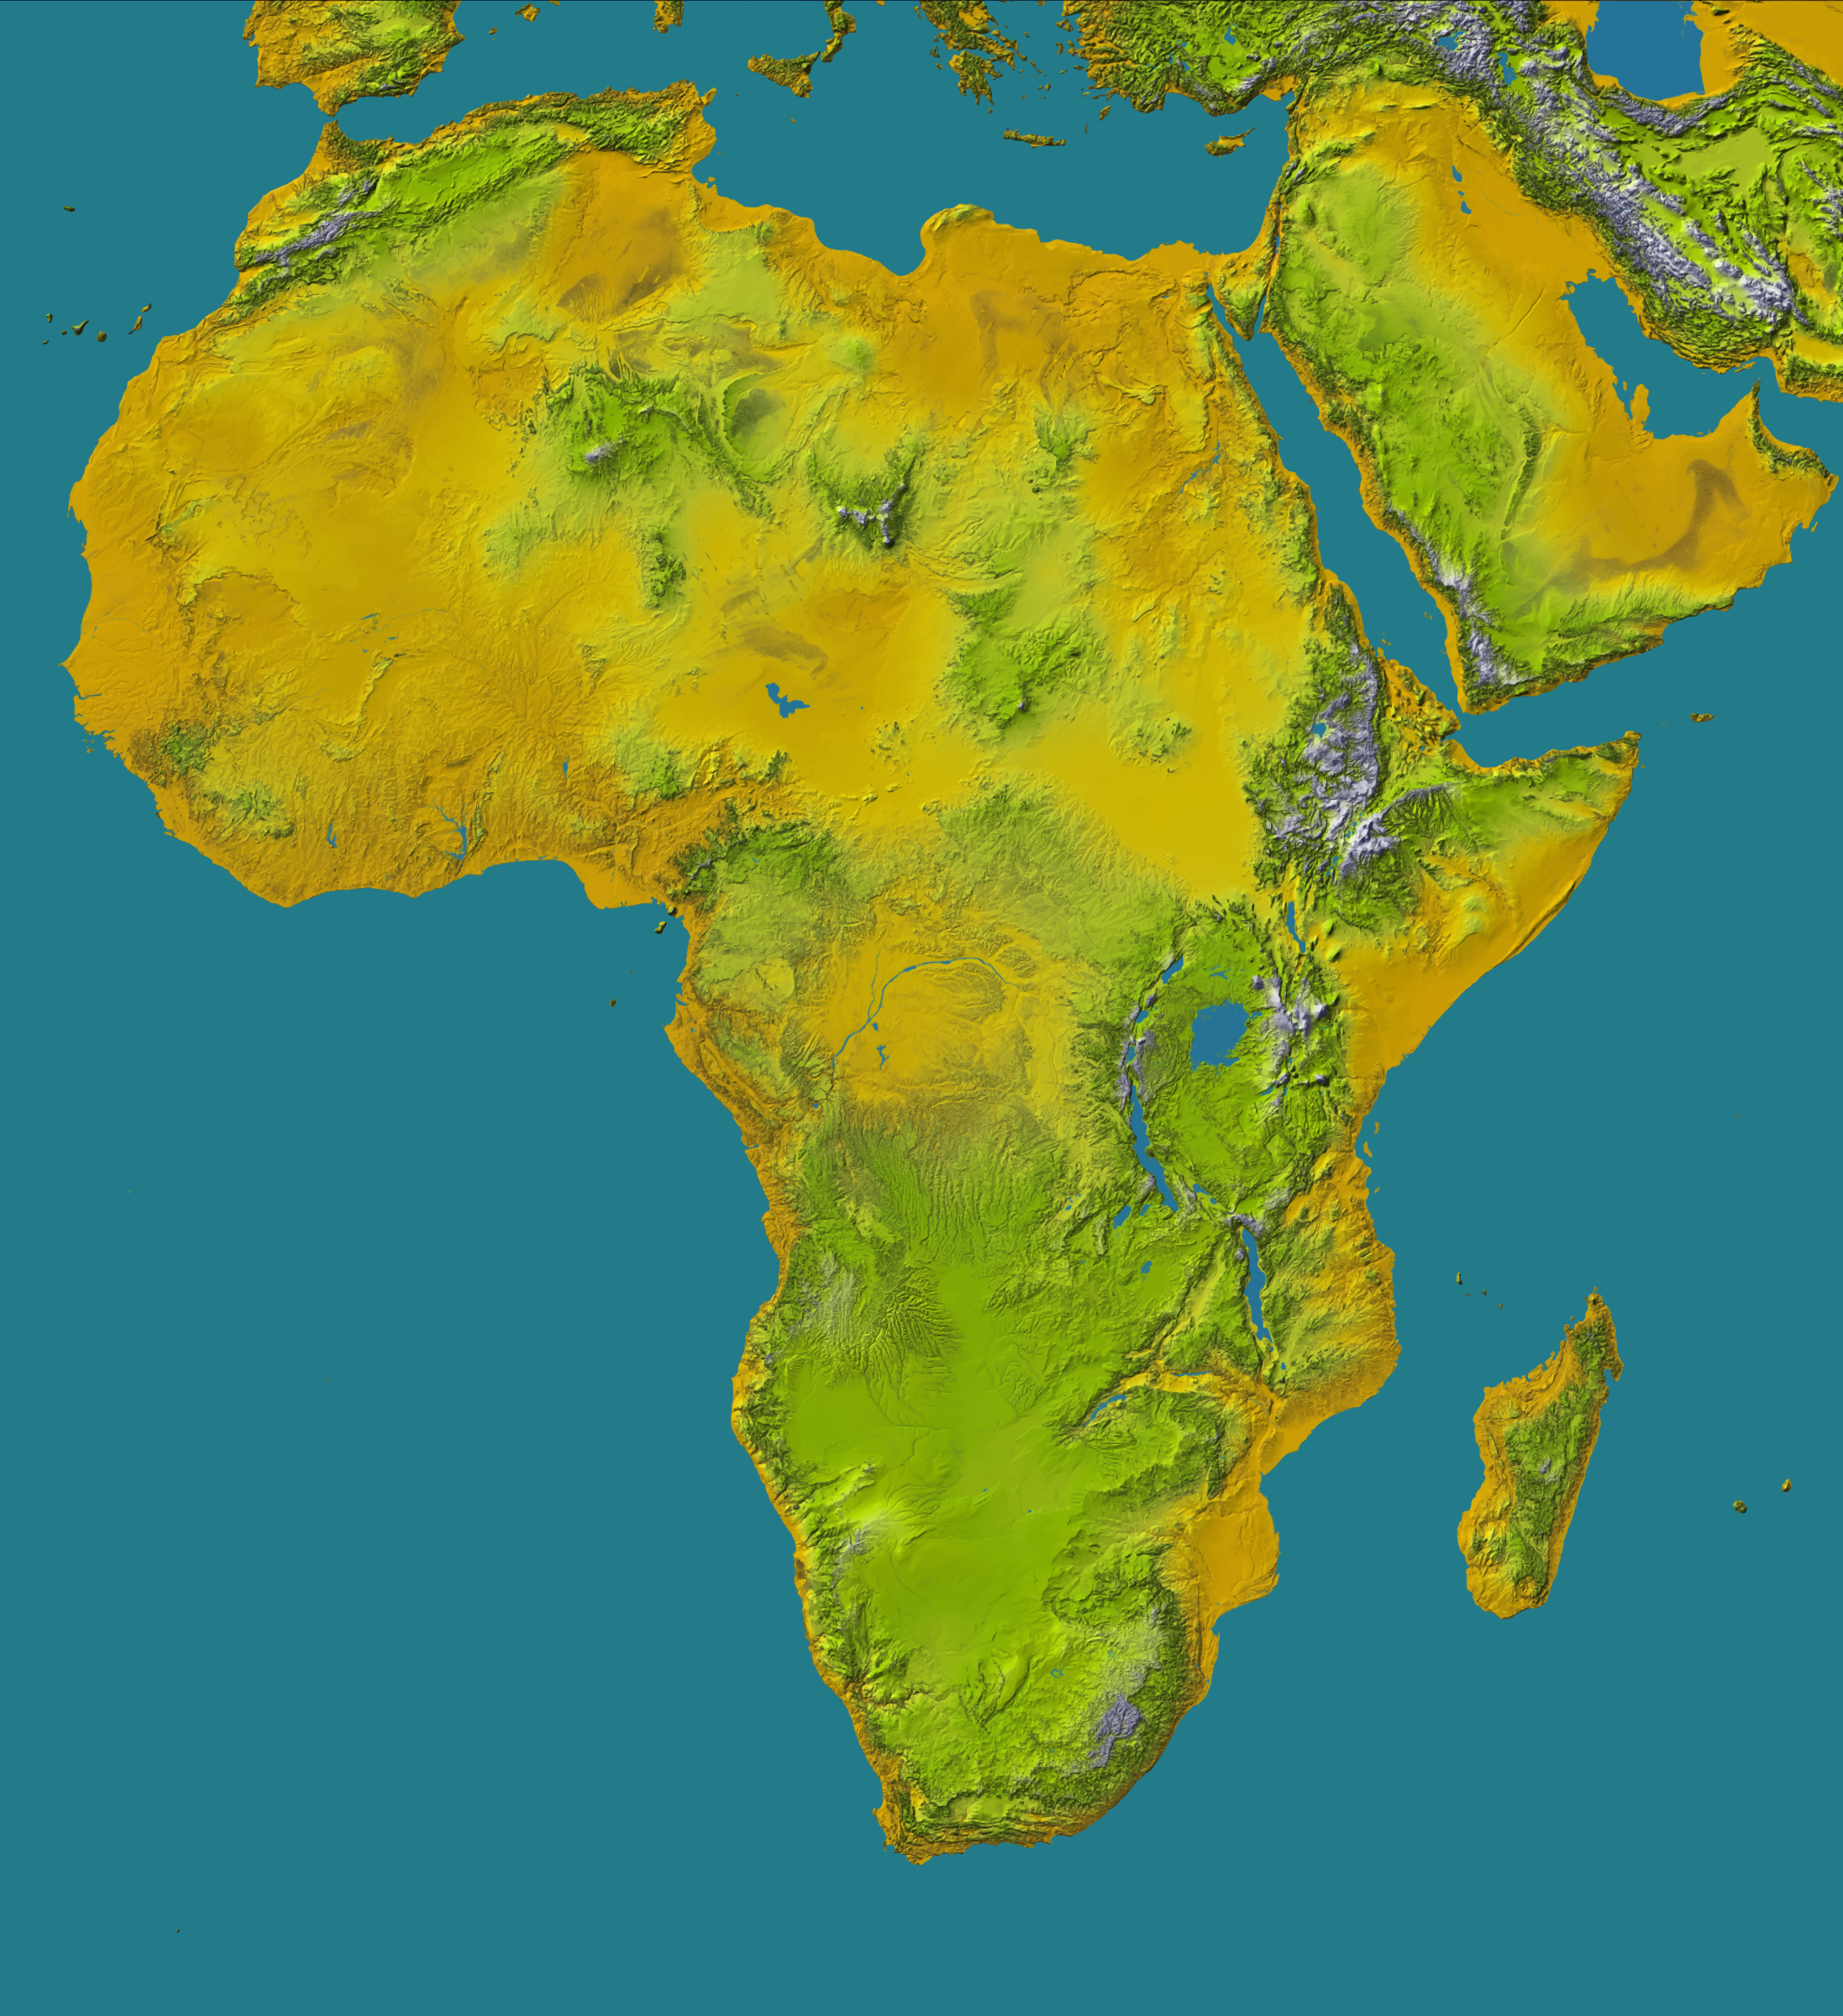 Africa topology (detailed) by Firkin